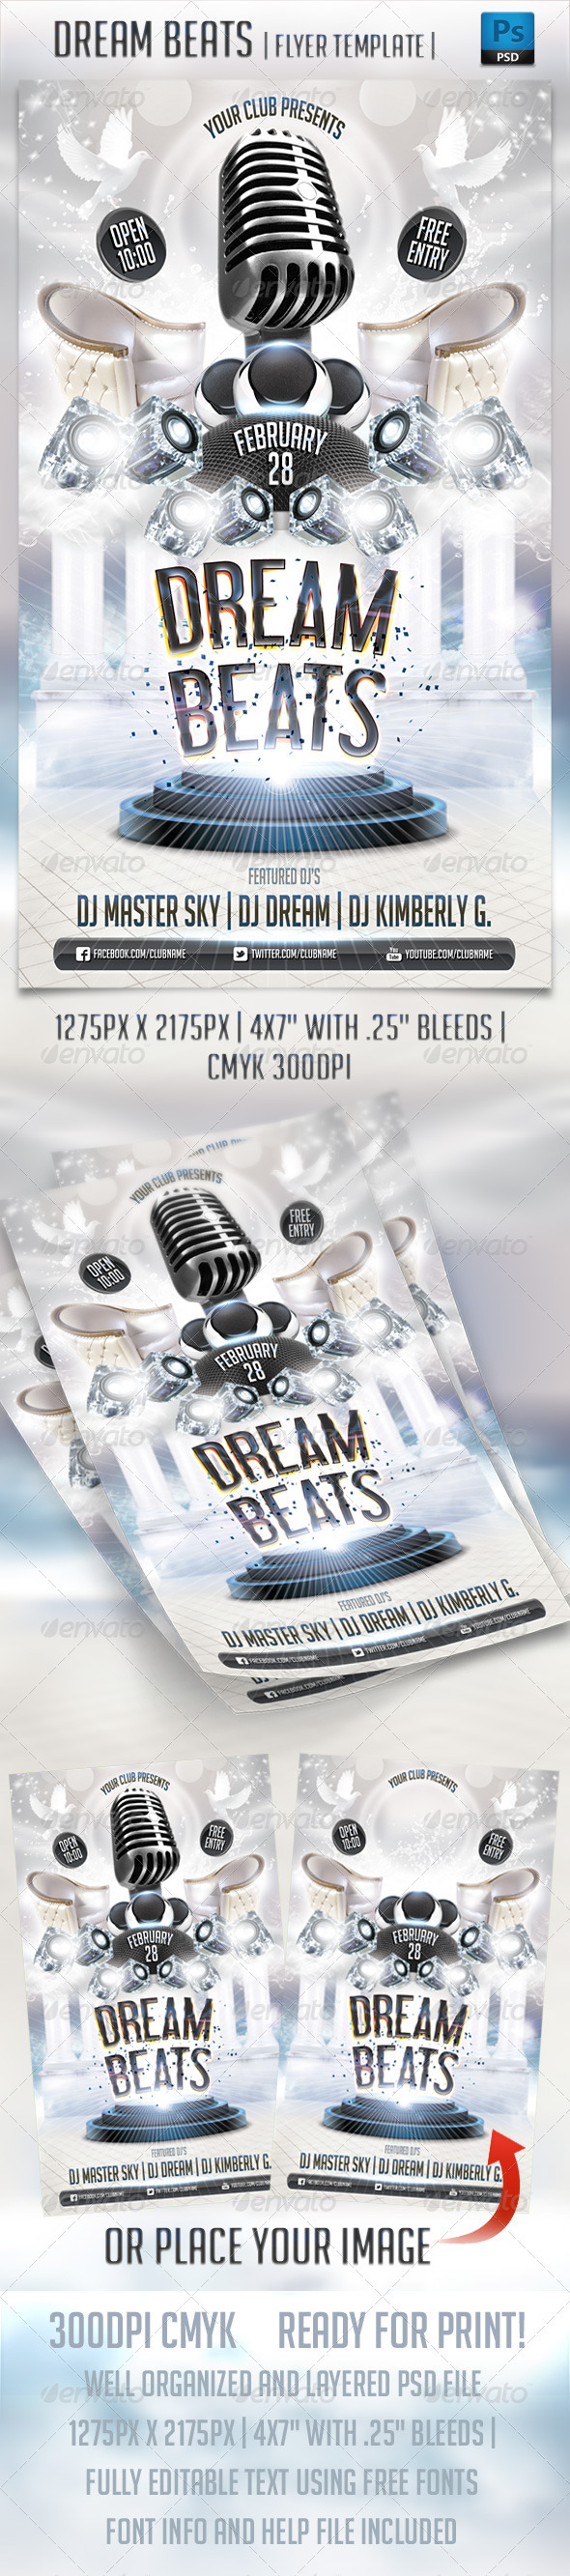 Dream Beats Flyer Template - Clubs & Parties Events